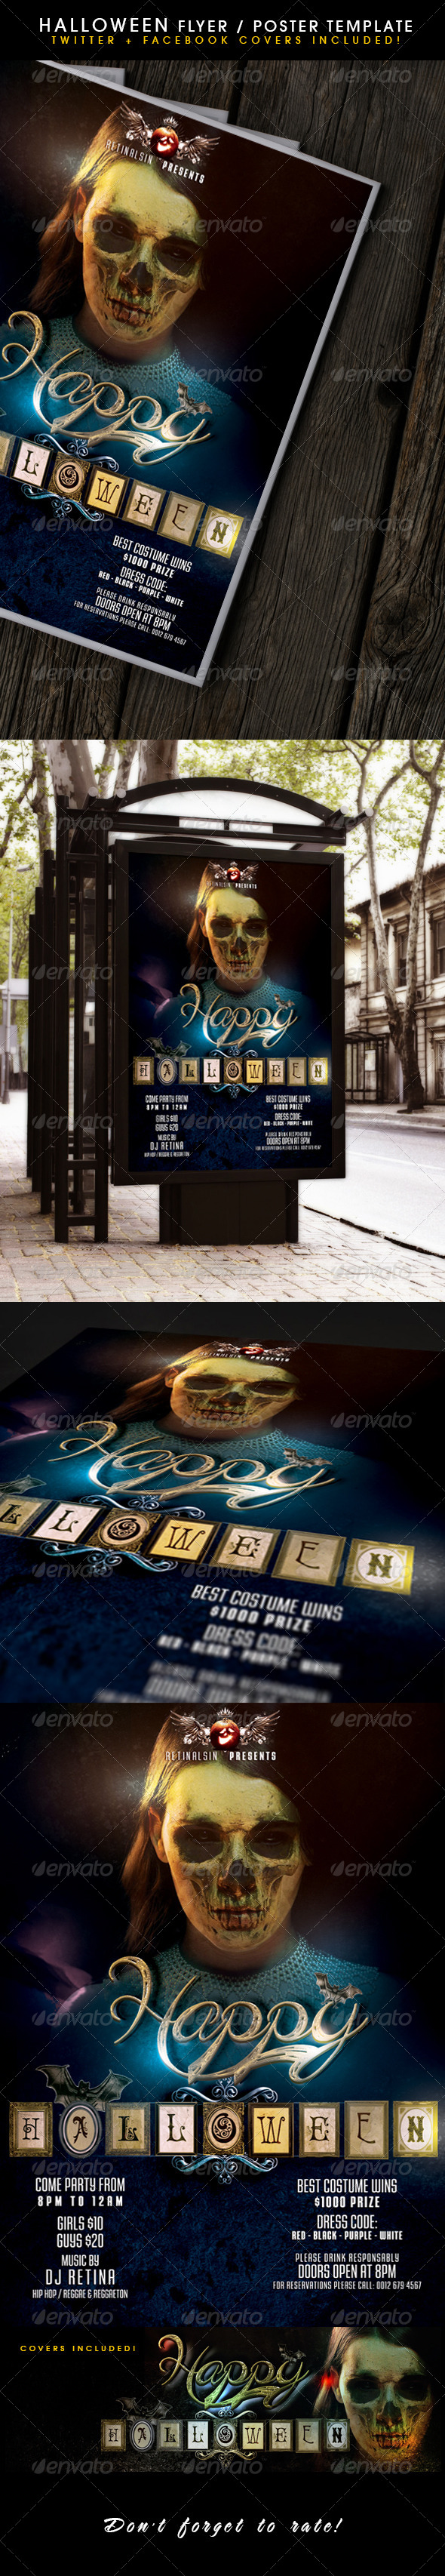 GraphicRiver Halloween Poster & Fb-Twitter Covers 8755761